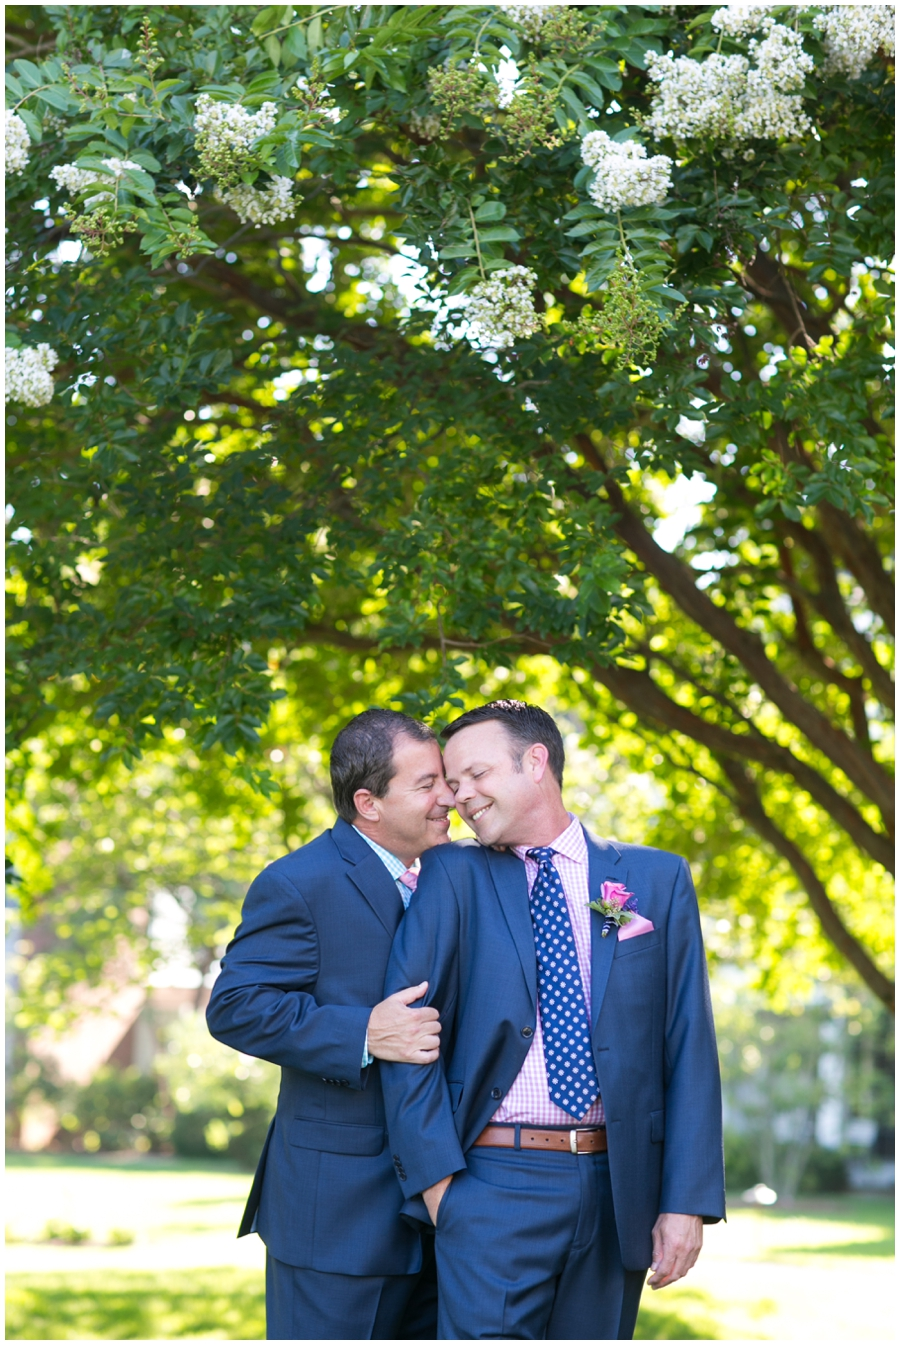 Inn at Perry Cabin LGBT Wedding Photographer - Best wedding photography of 2013